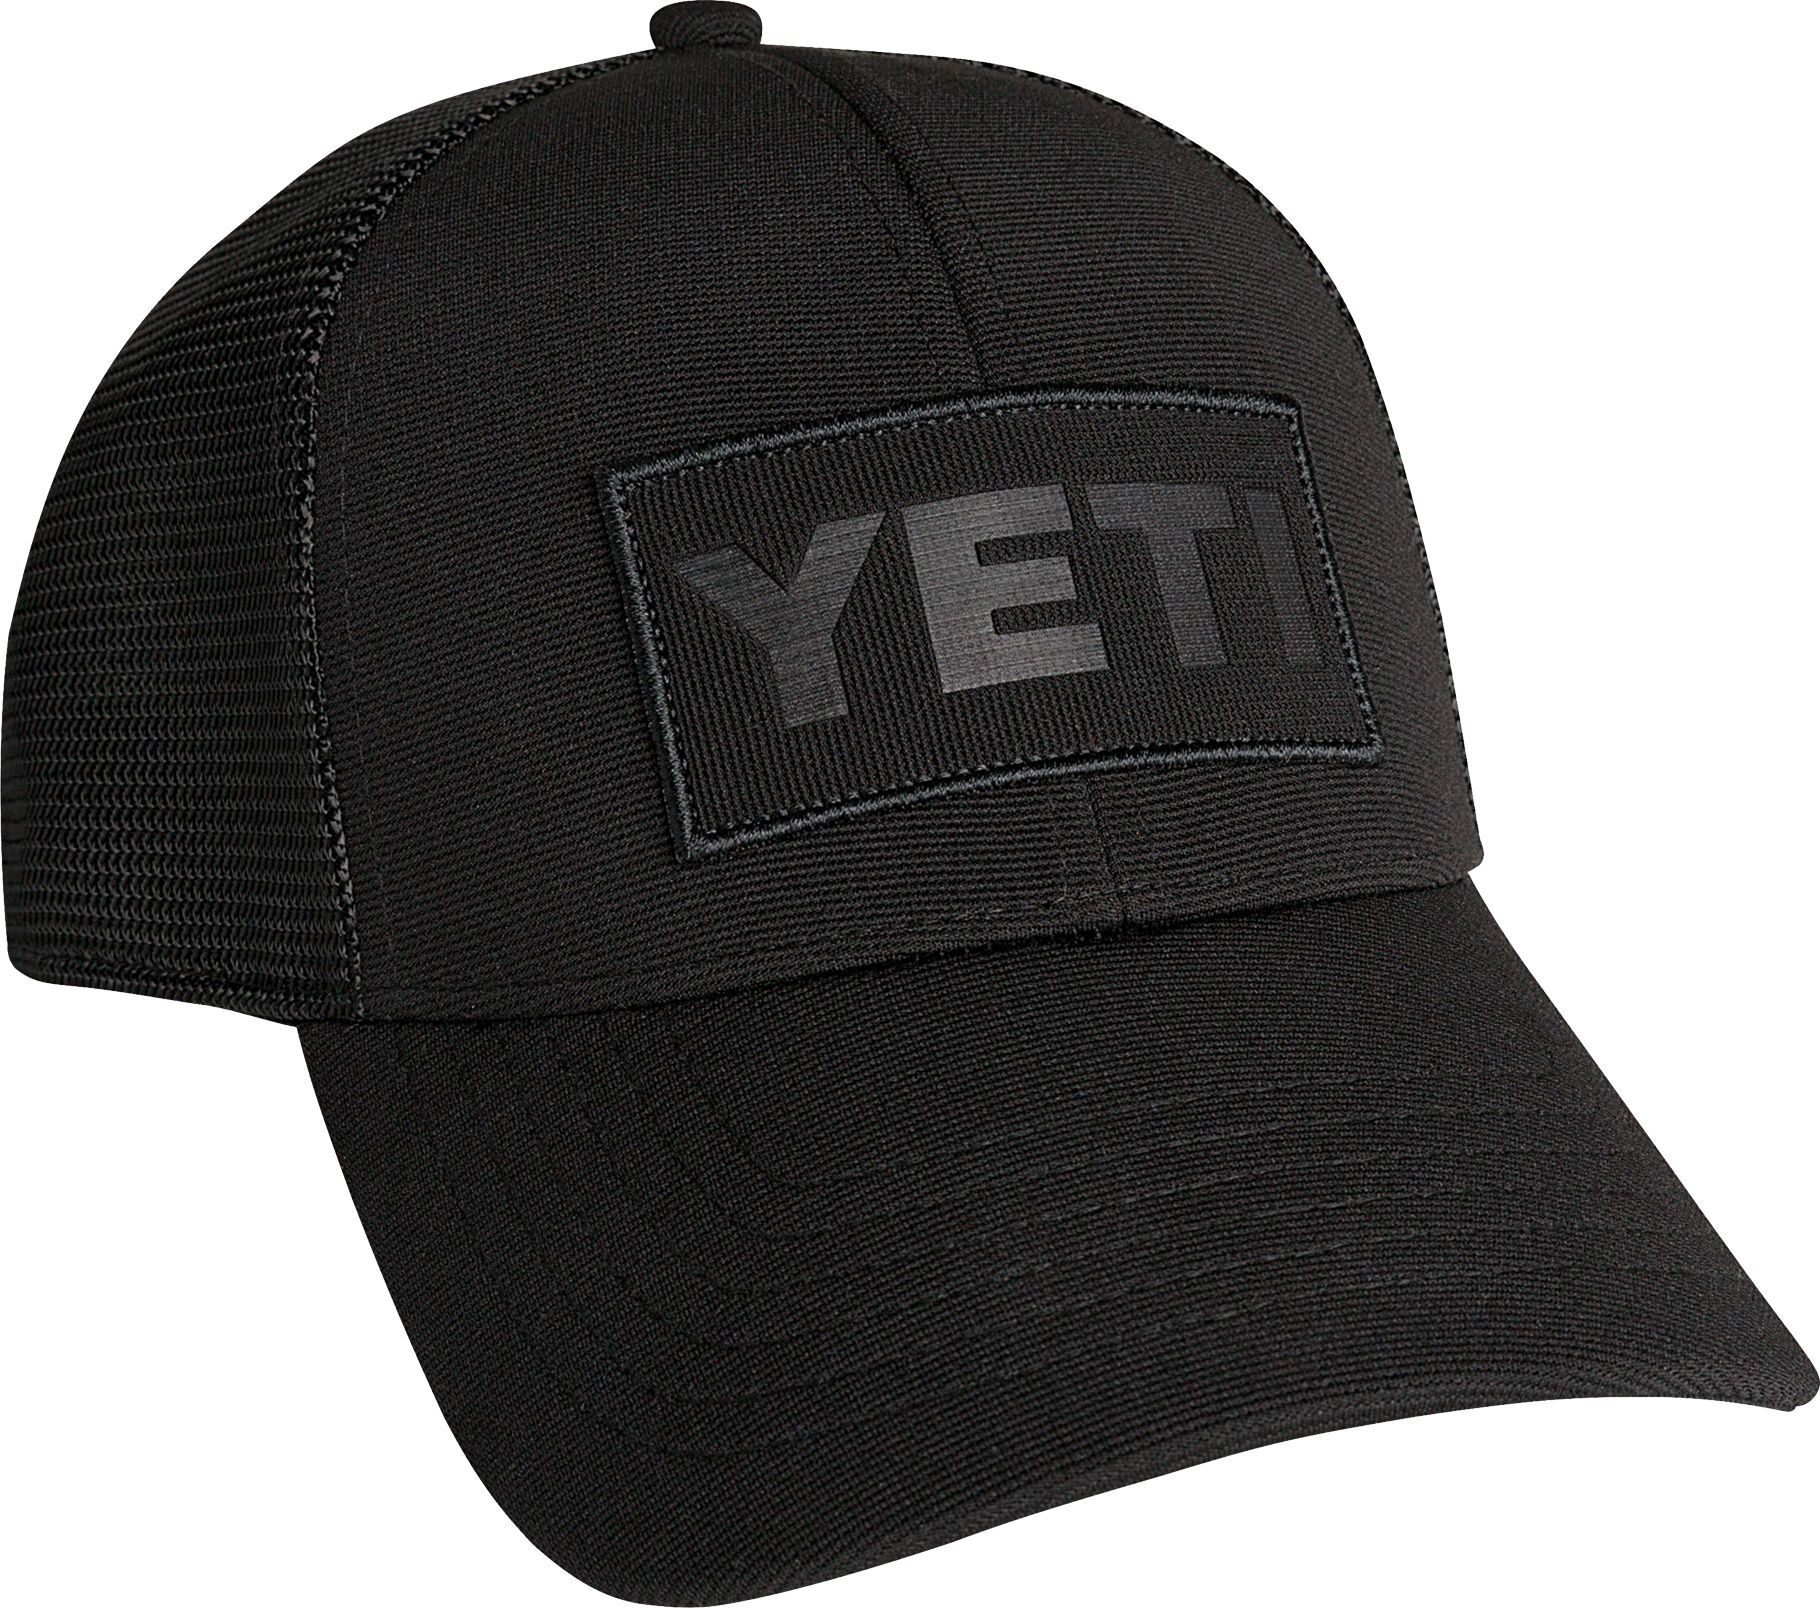 YETI Black on Black Patch Trucker Cap | DICK'S Sporting Goods